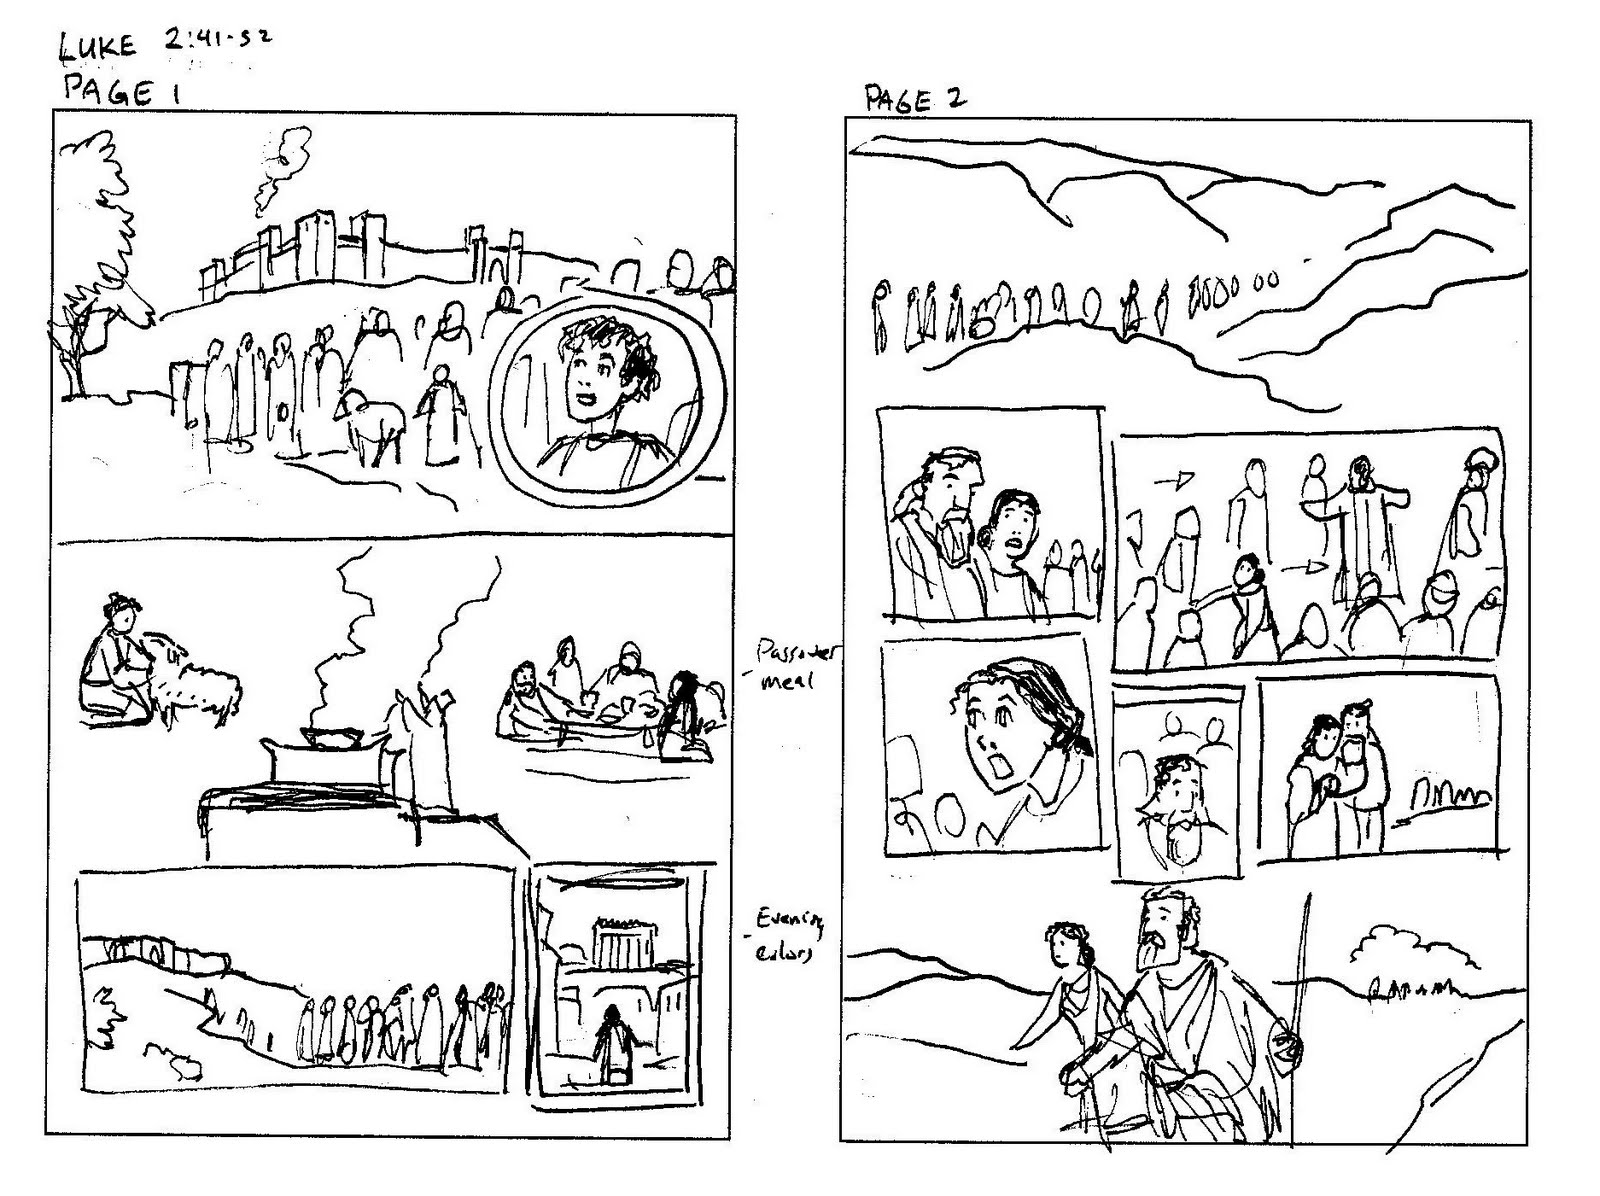 A Thumbnail Sketch of the Bible Story